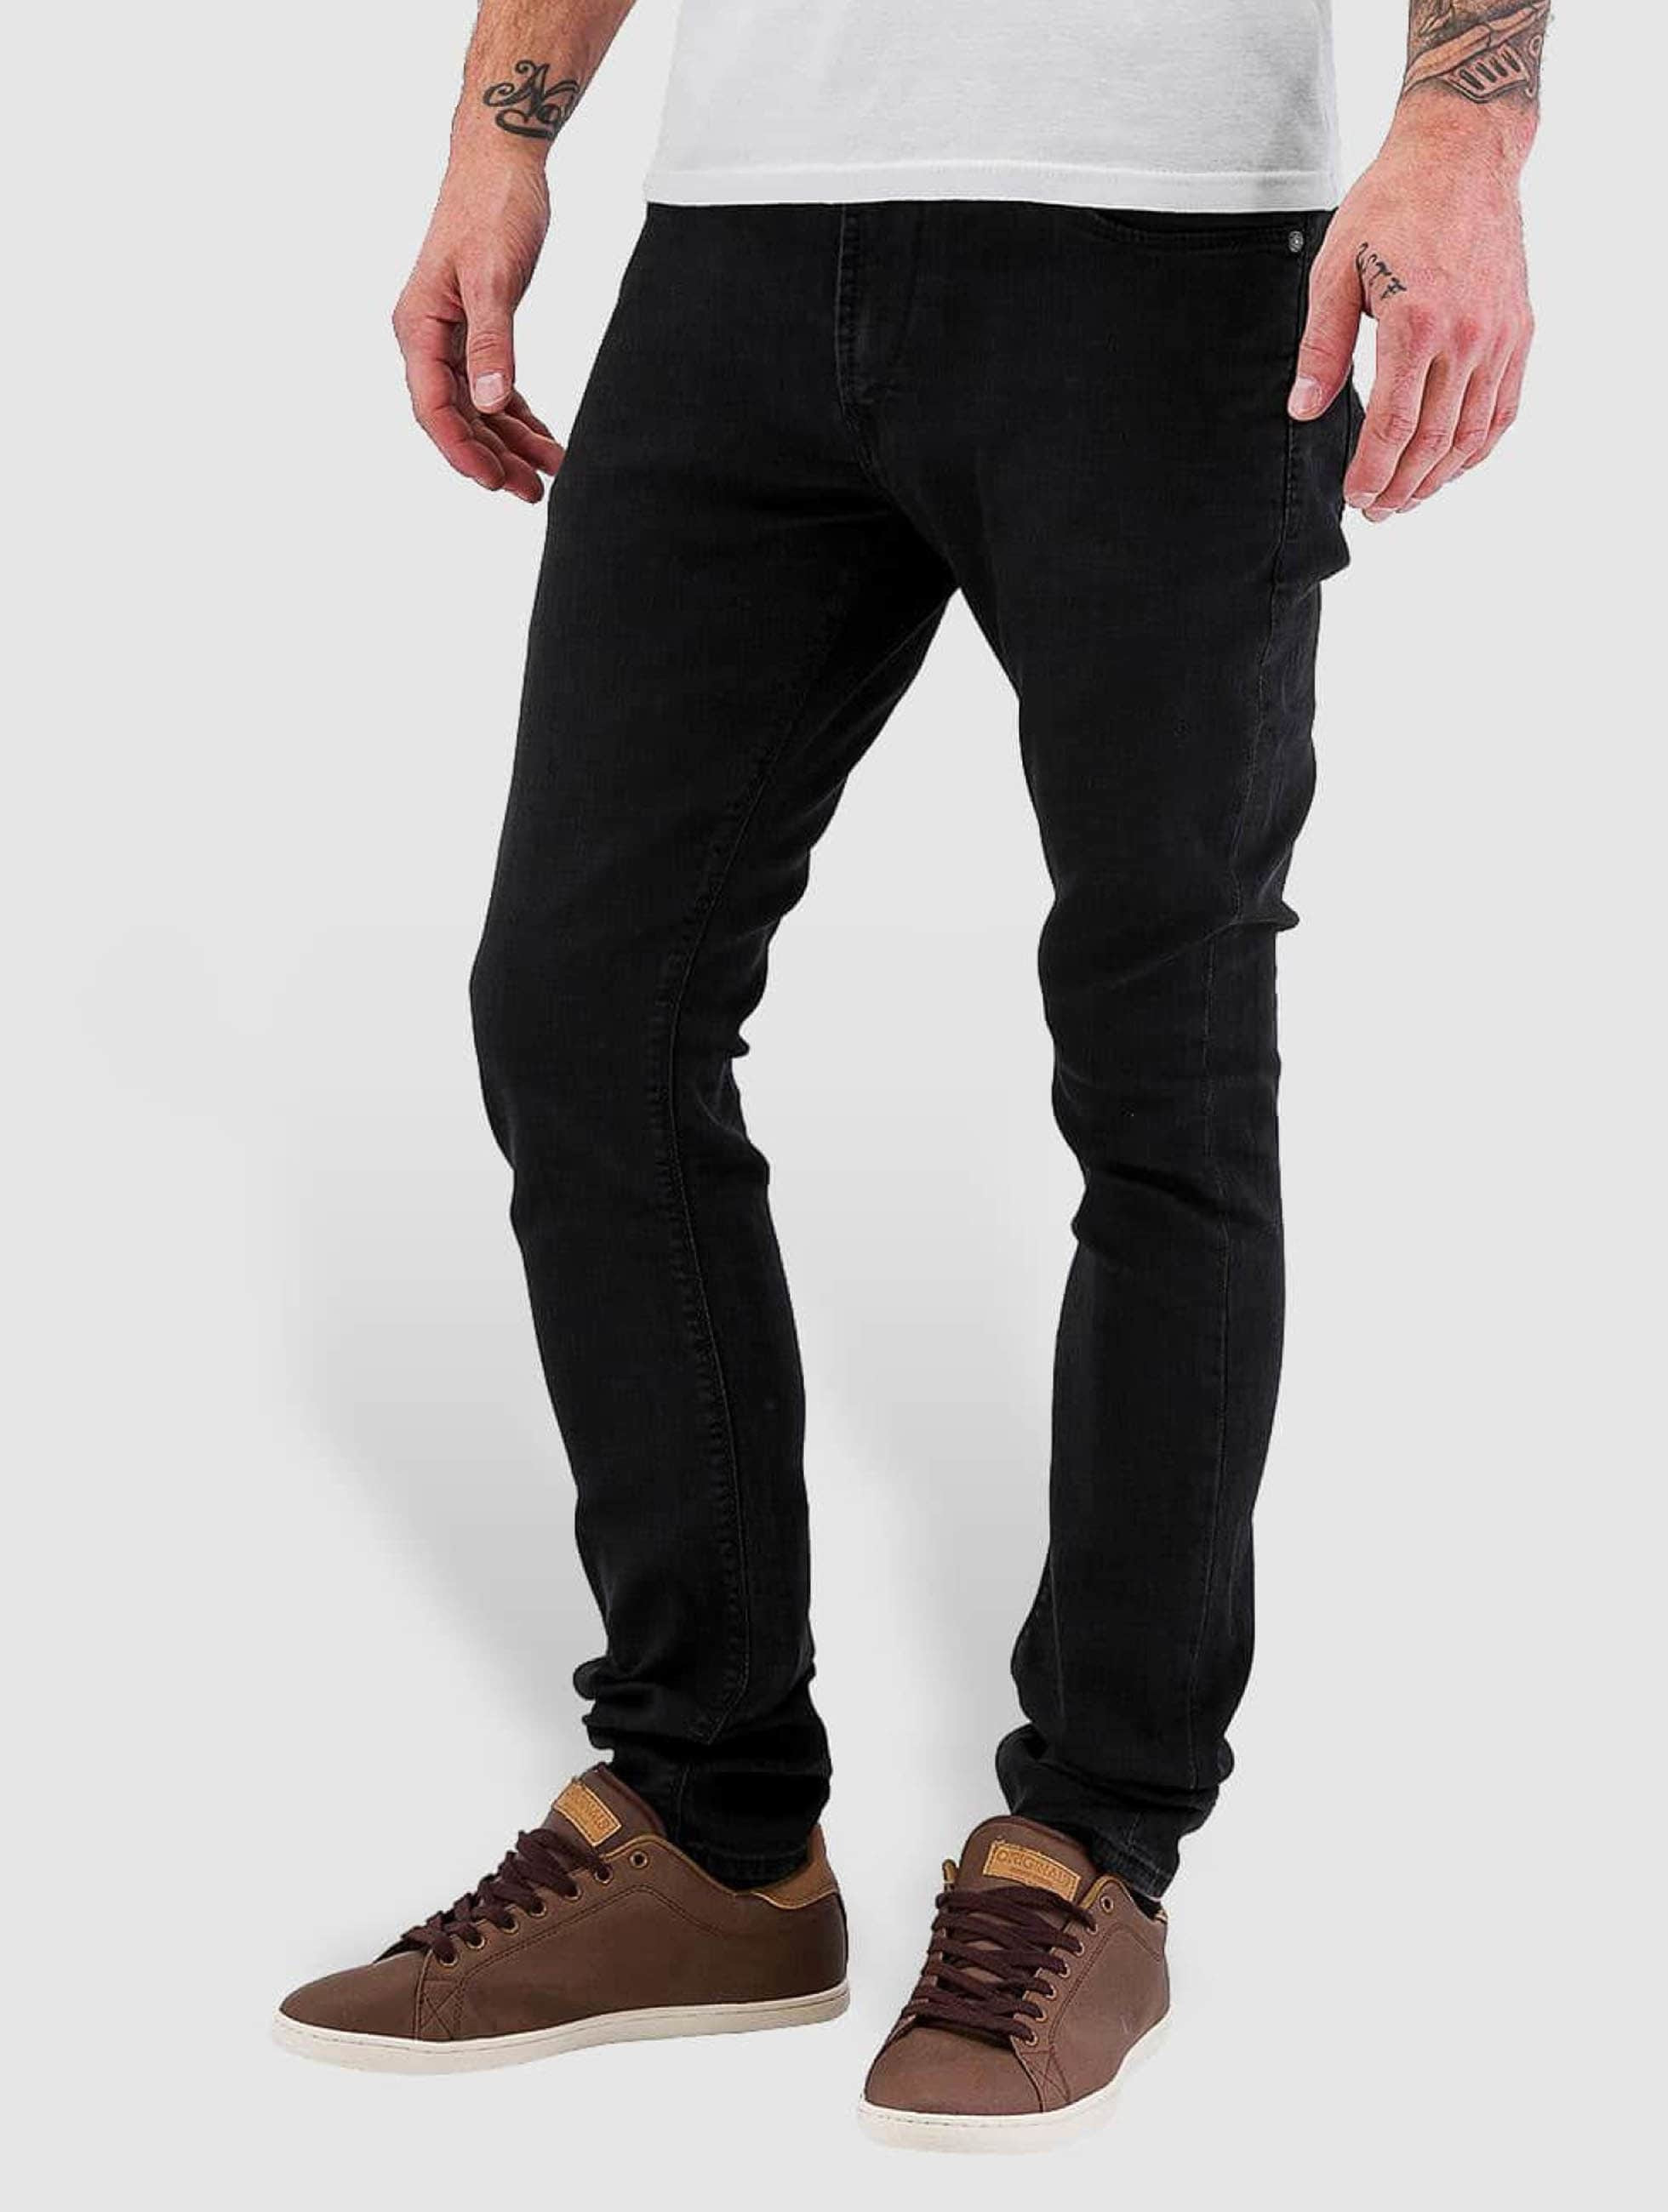 Reell Jeans Männer Skinny Jeans Radar Stretch Super in schwarz